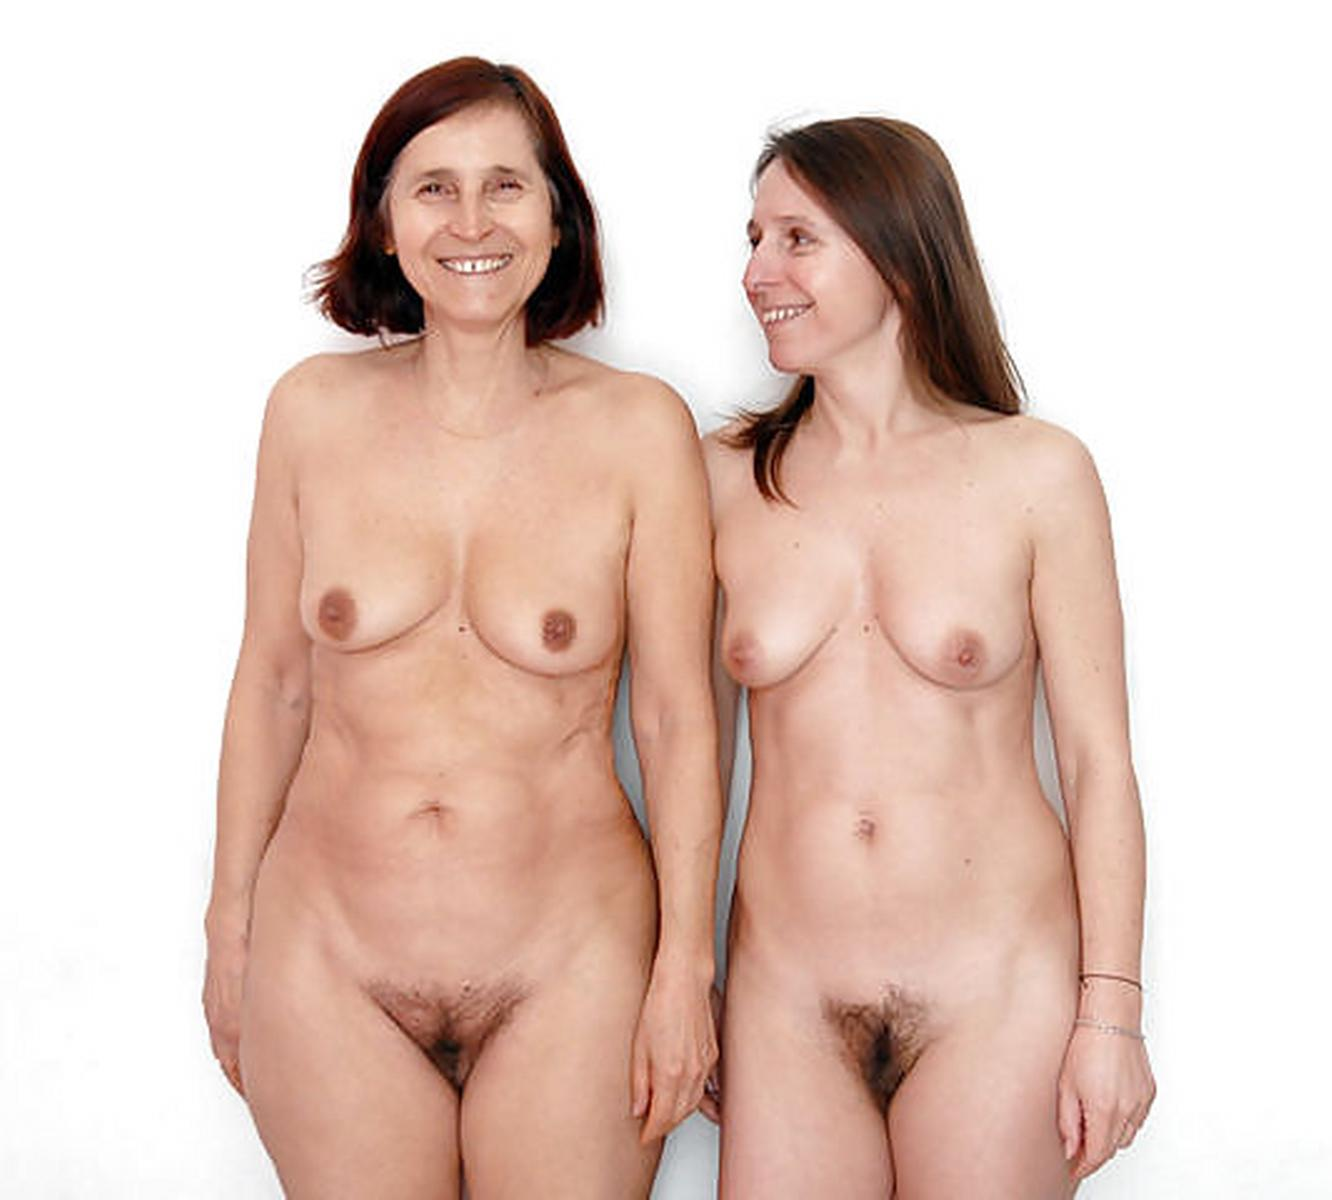 Nude pics of mothers